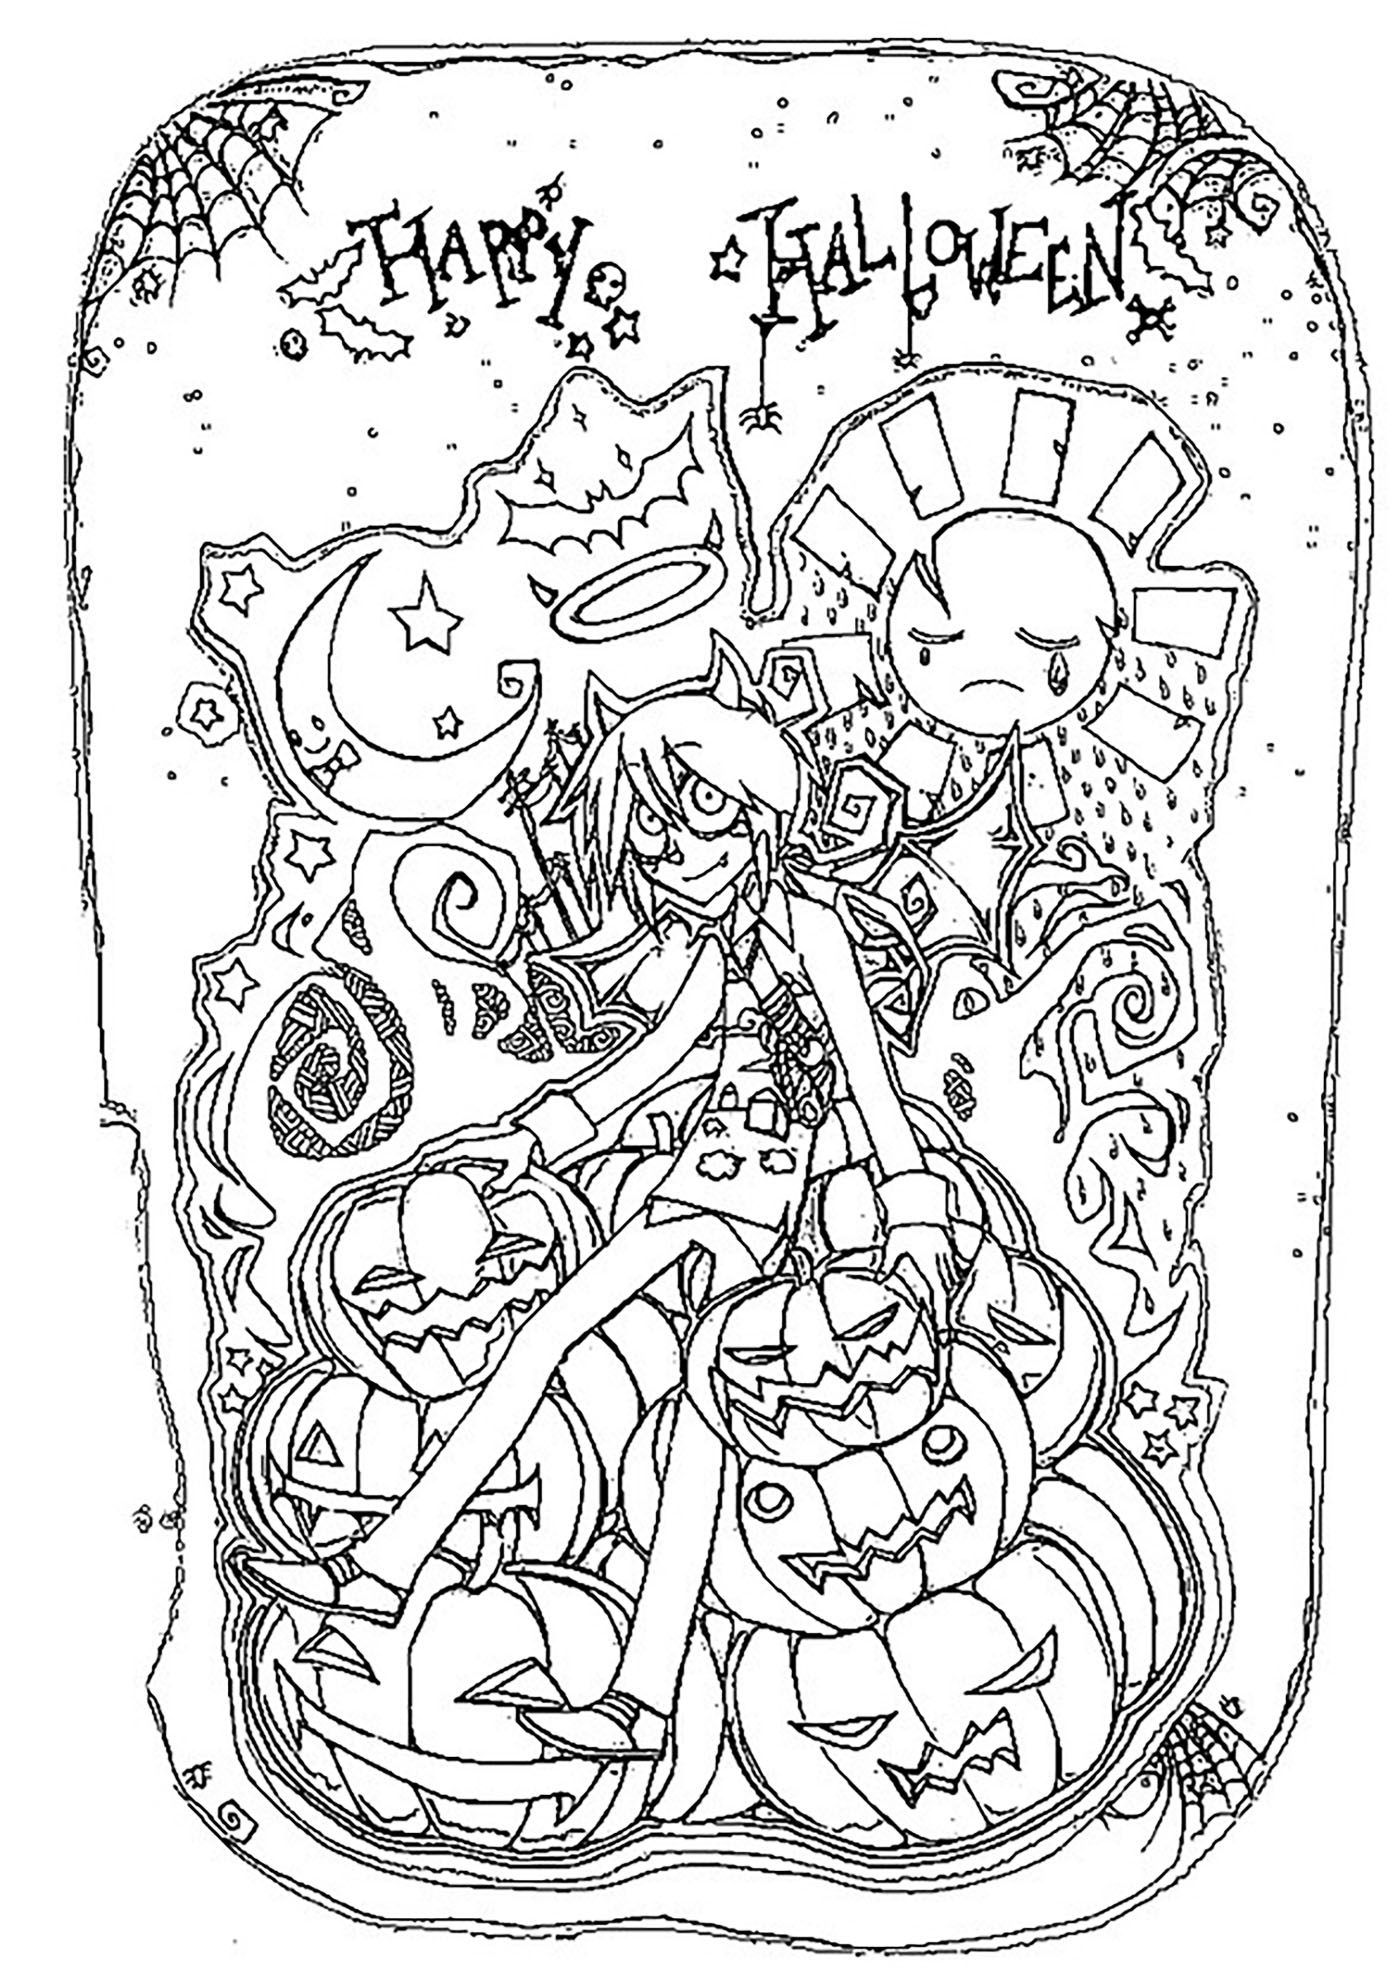 Halloween Coloring pages for adults coloring adult halloween